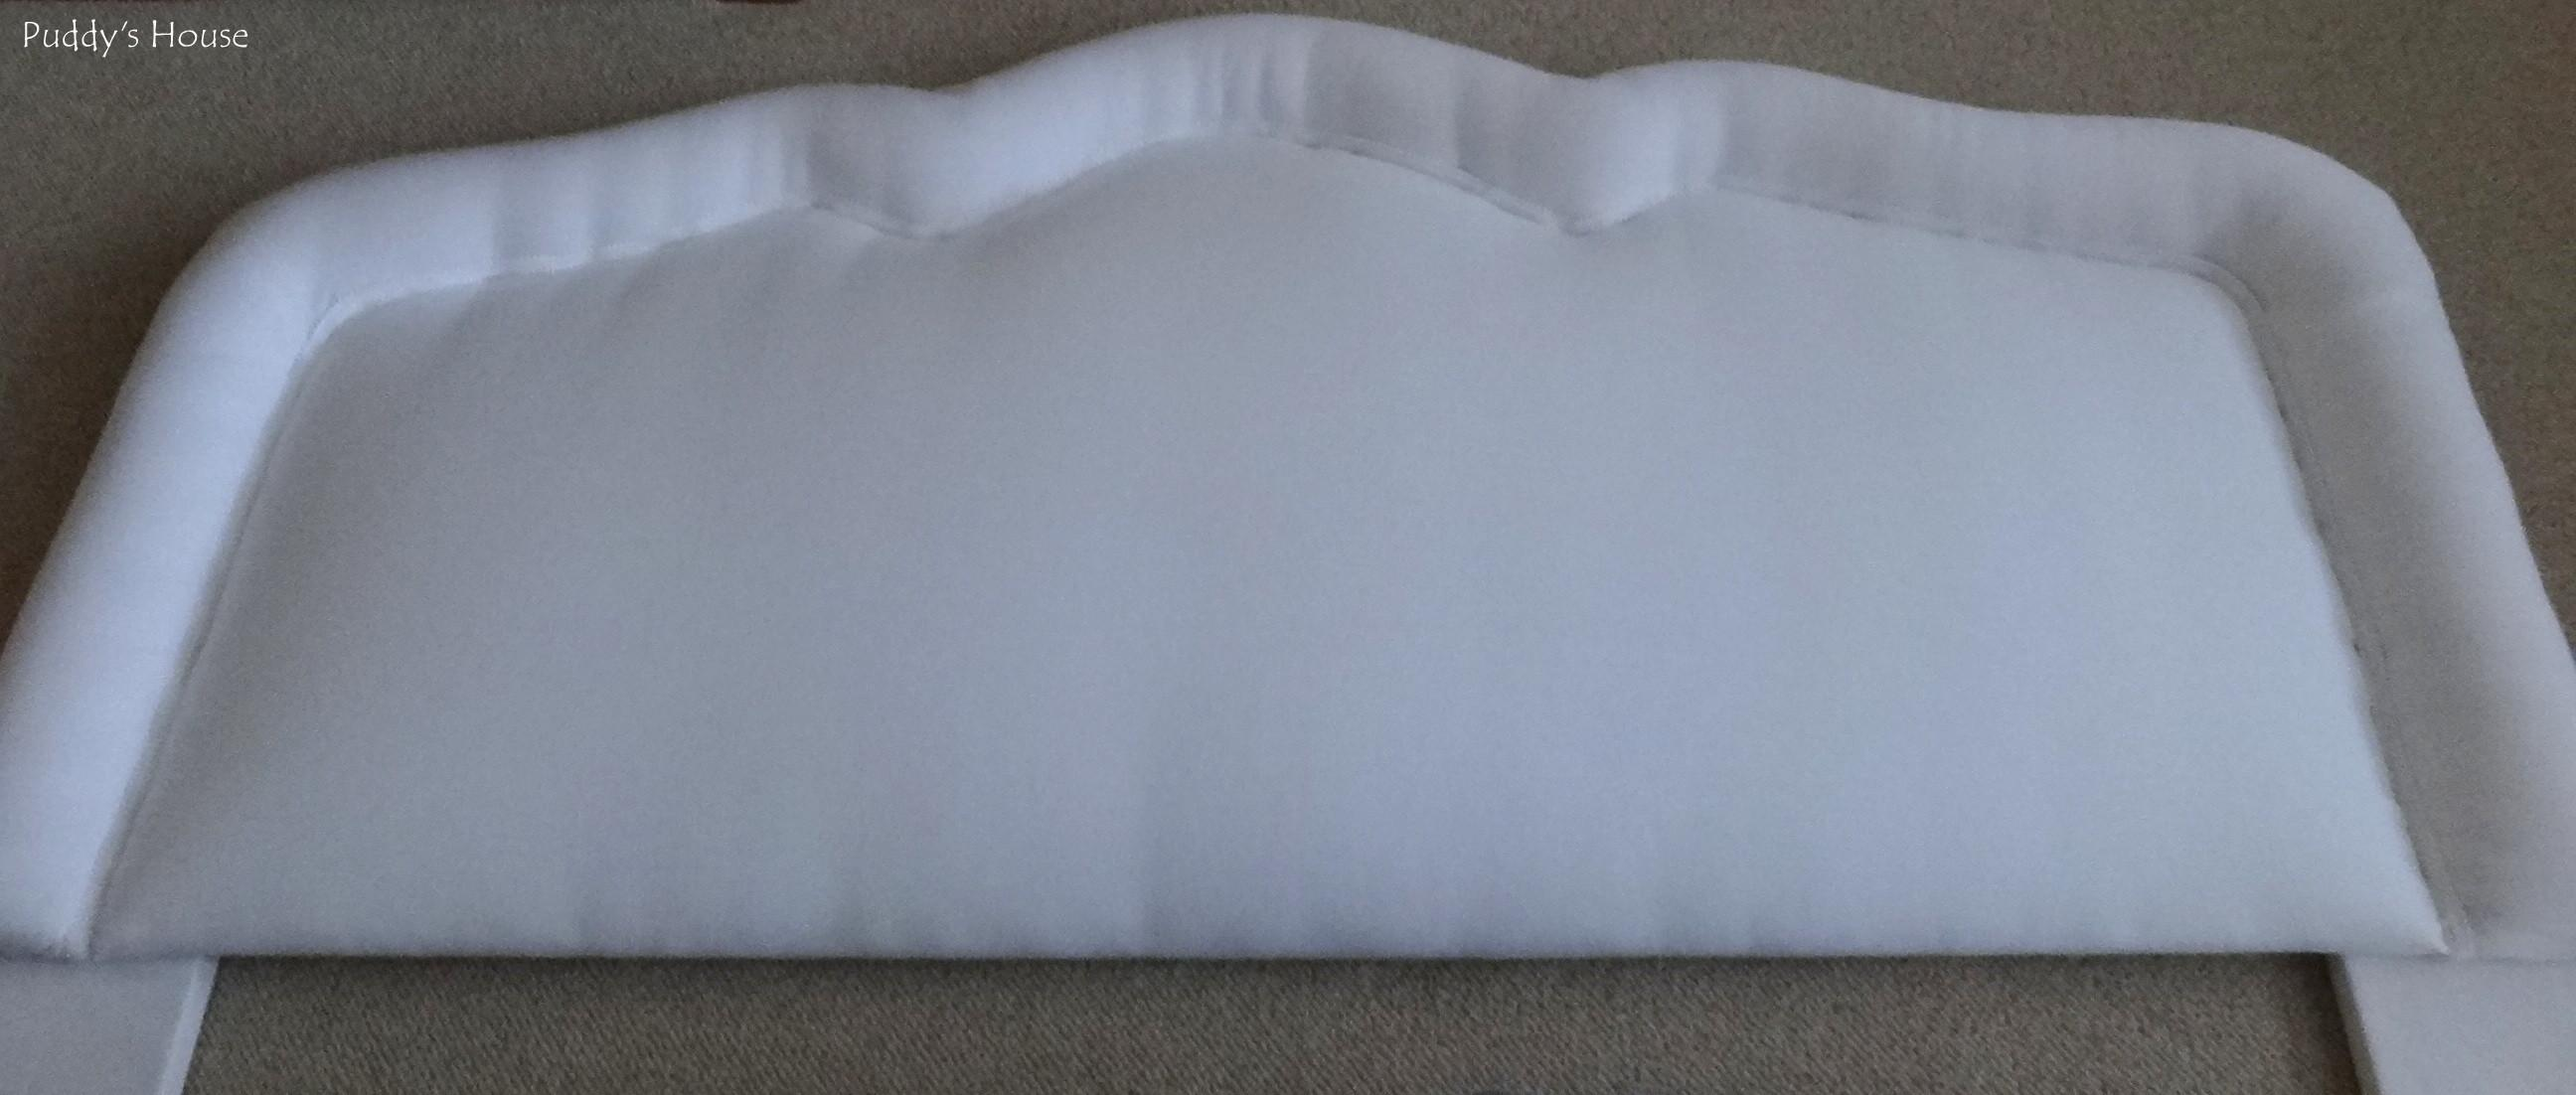 Diy Upholstered Headboard Before Puddy House